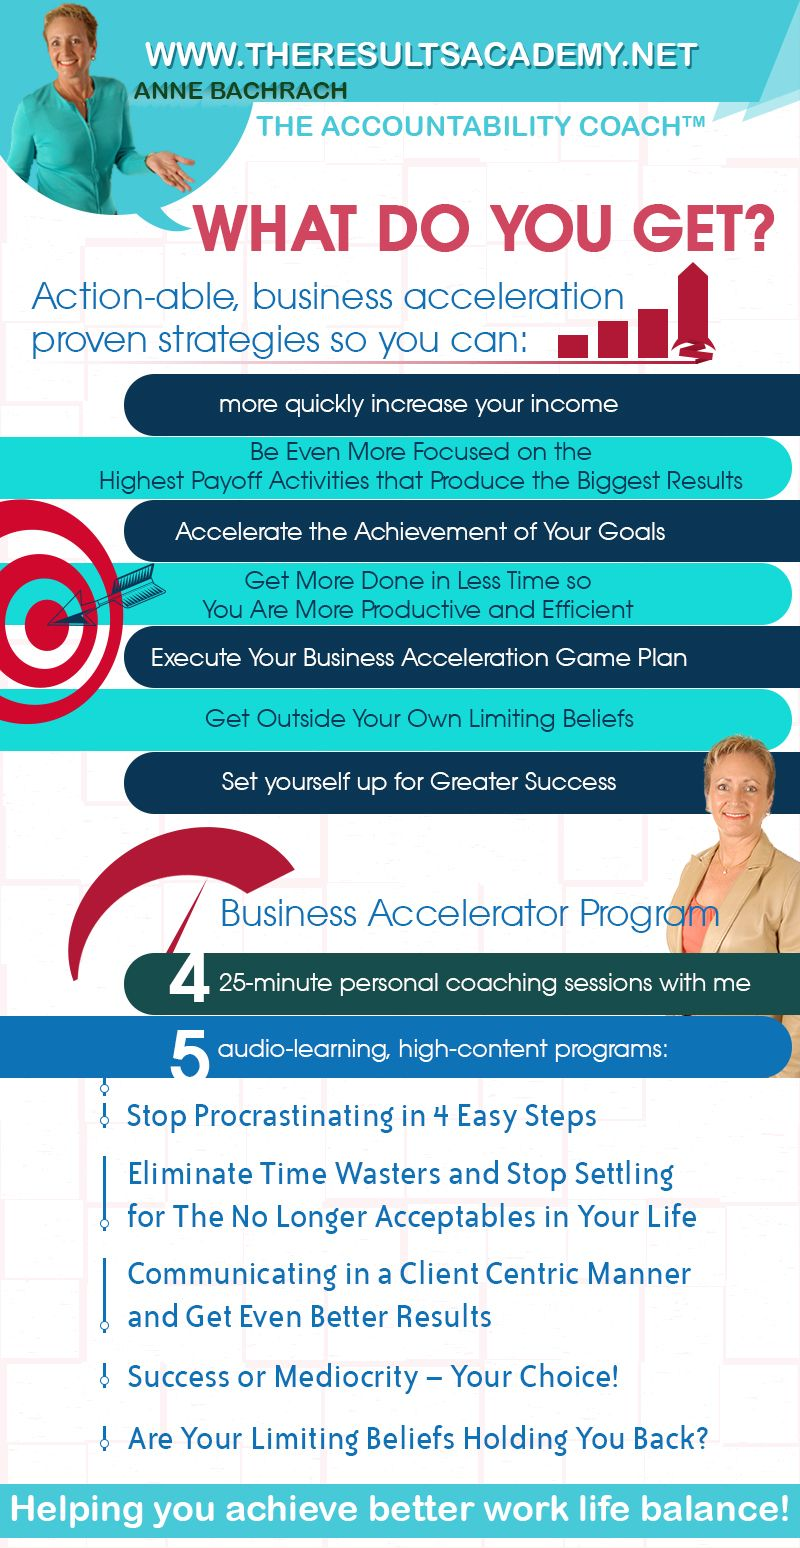 Business Accelerator Package 1 to help you accelerate your results.   http://theresultsacademy.net/program-1/